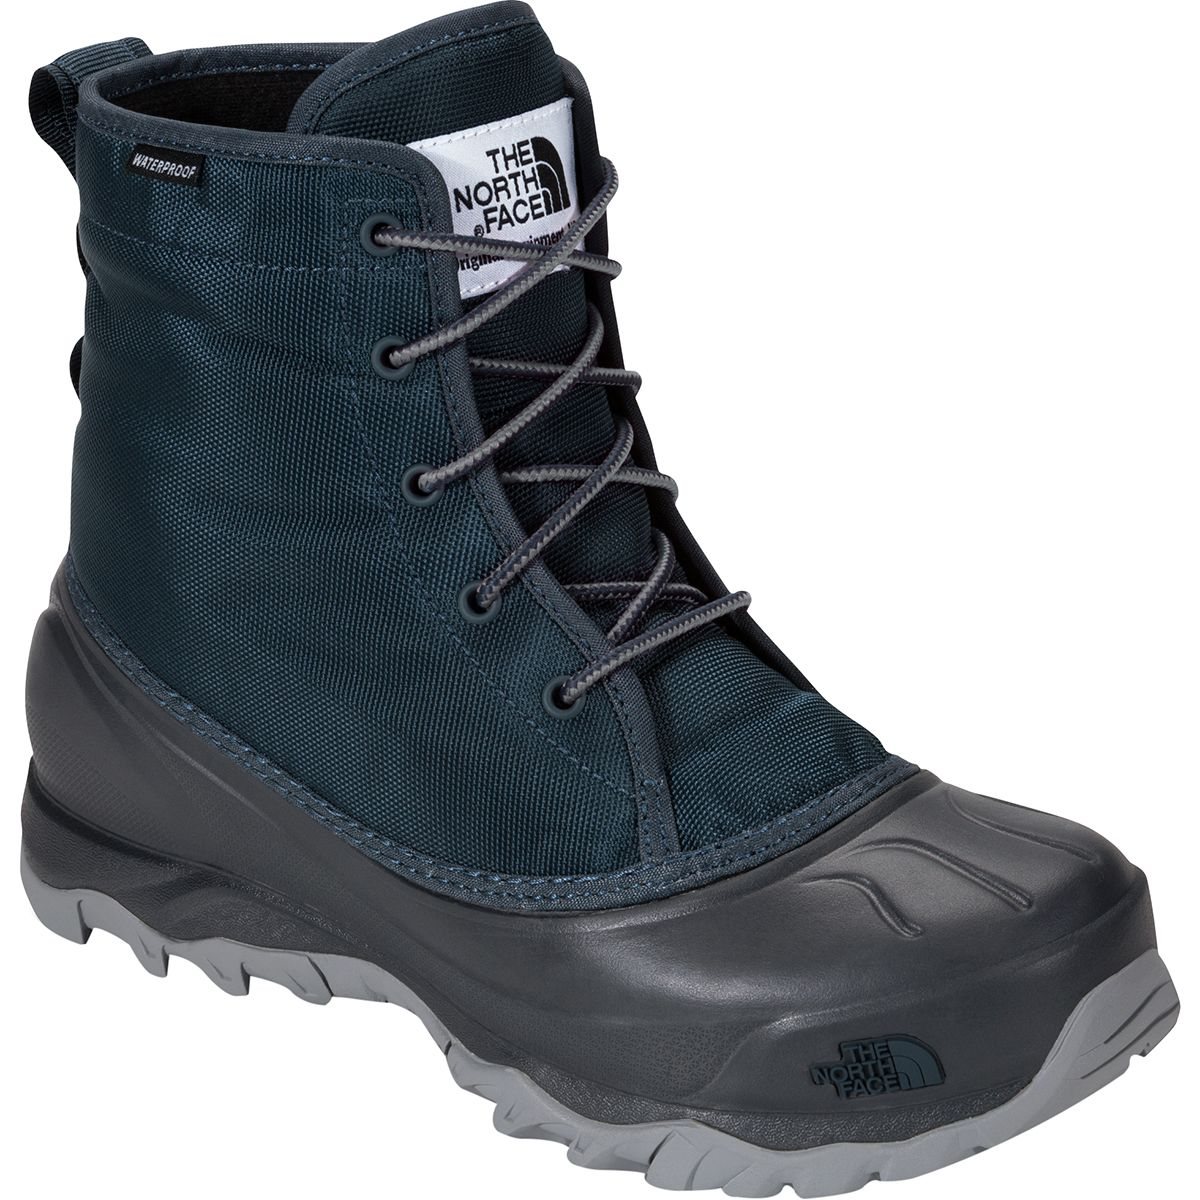 The North Face Tsumoru Women's Boots